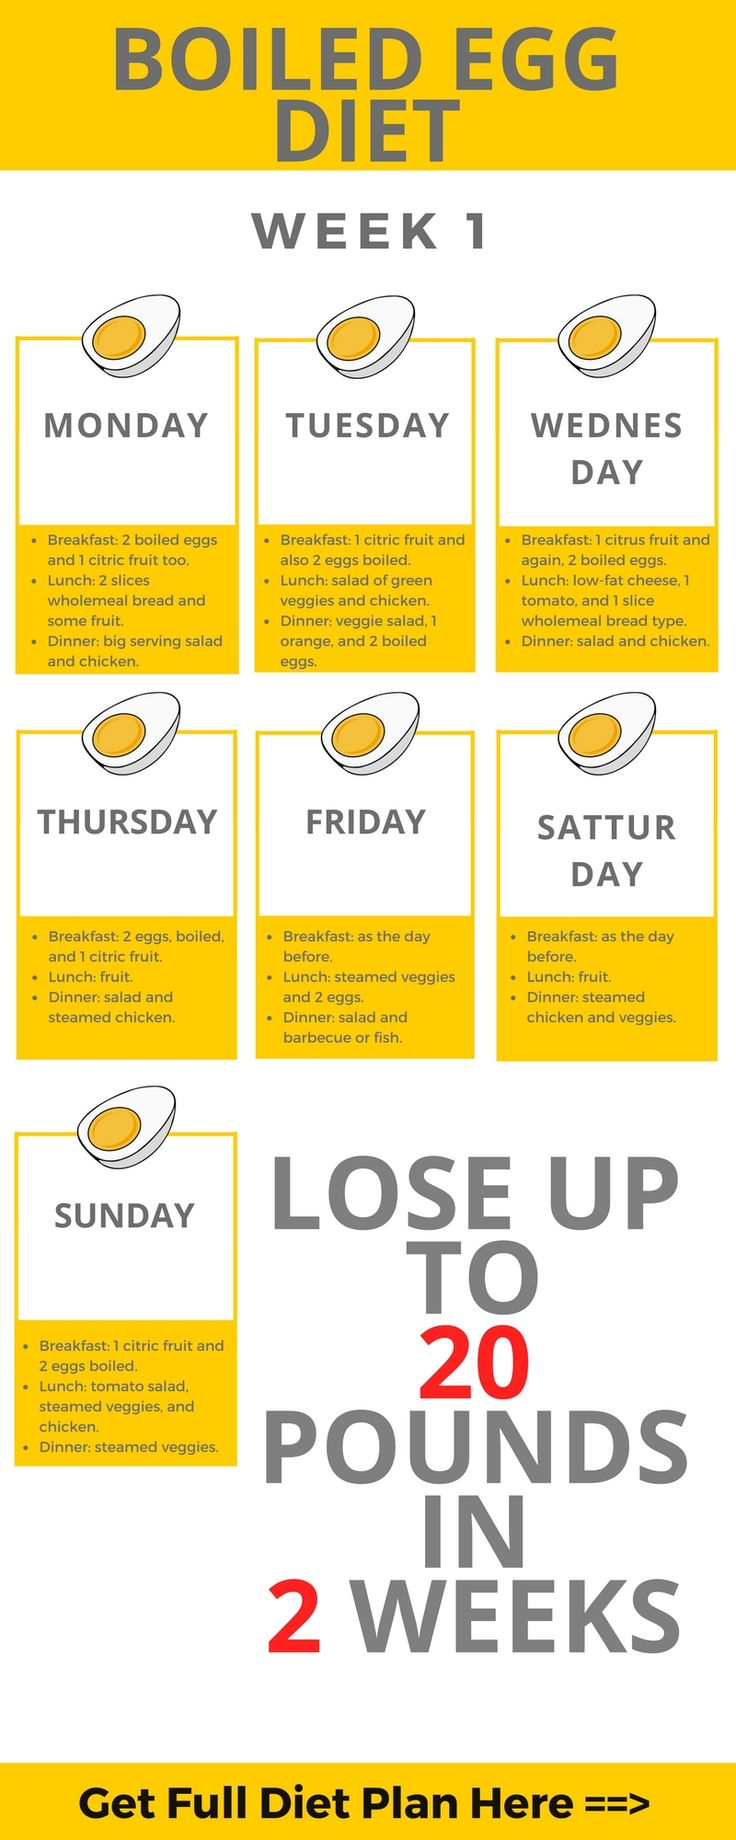 Best 20+ Egg Diet ideas on Pinterest | Egg diet plan, Boiled egg ...